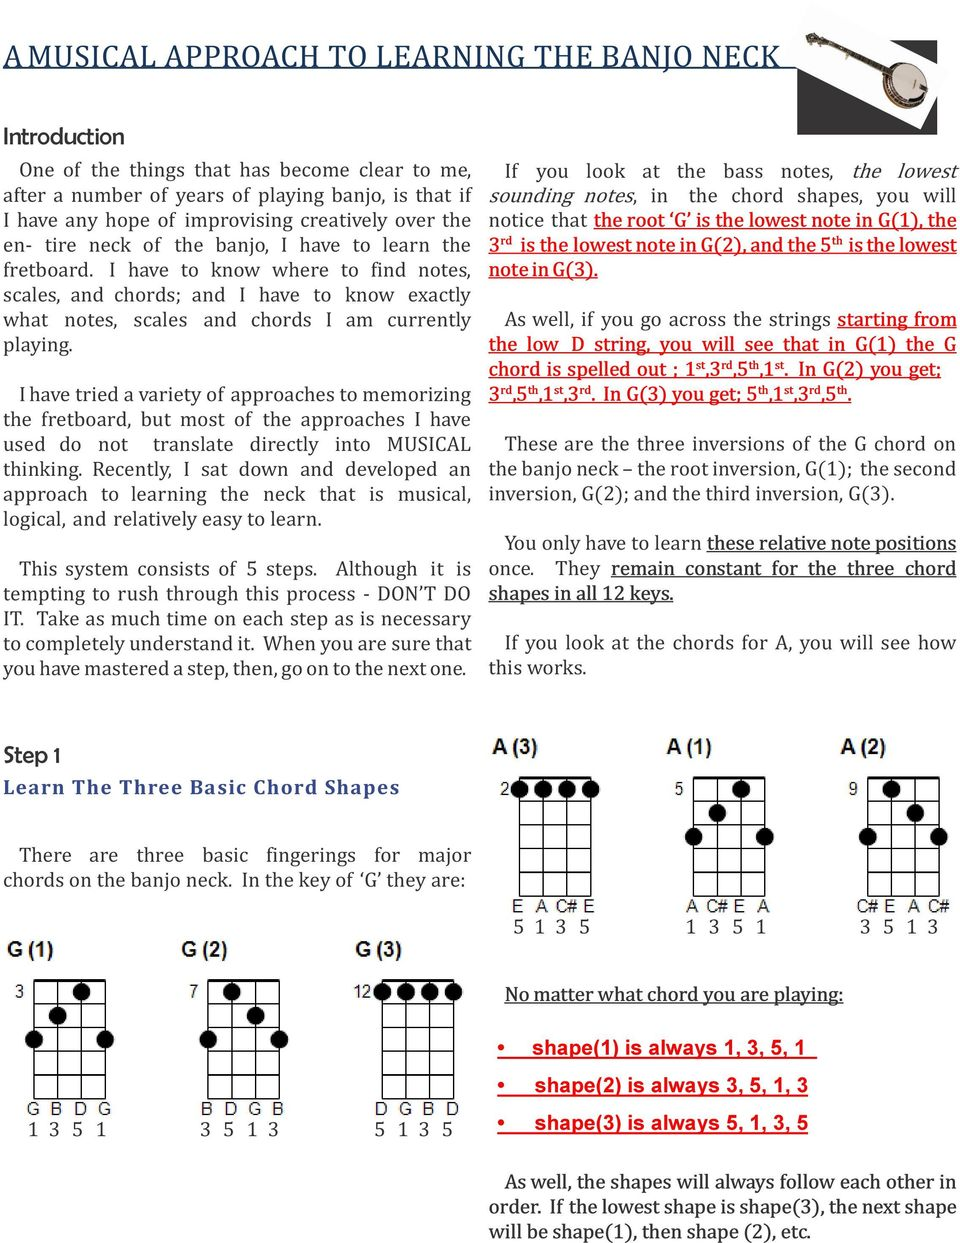 A MUSICAL APPROACH TO LEARNING THE BANJO NECK - PDF